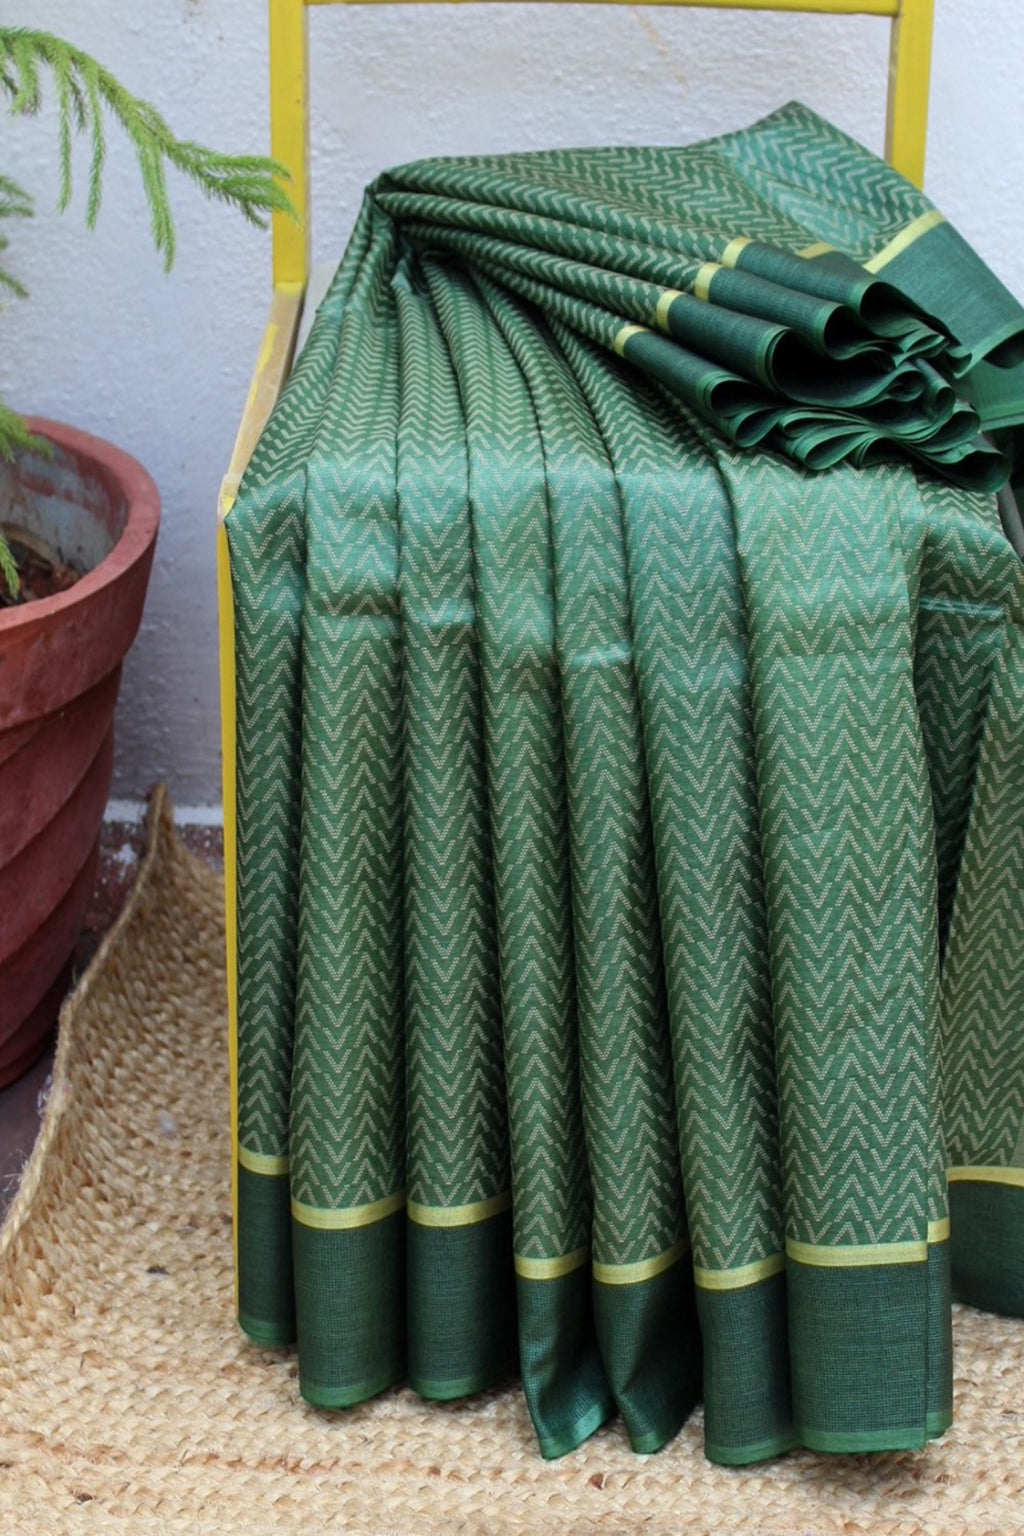 Green Kosa Silk Handloom Saree With Chevron Woven Design